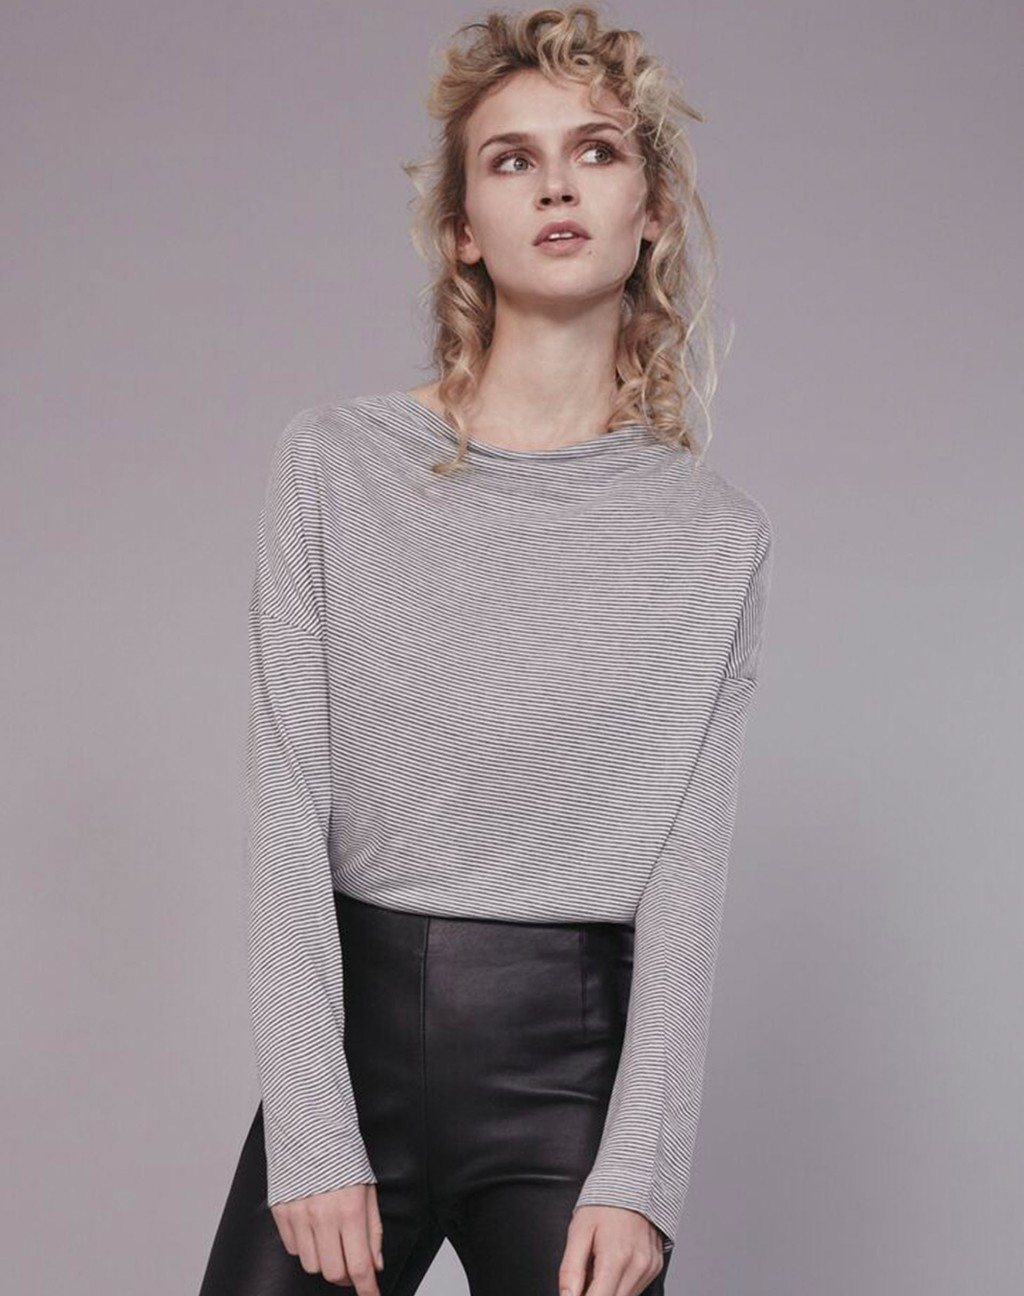 Cowl Neck Tee Grey/Soft White - neckline: round neck; pattern: plain; length: cropped; style: t-shirt; predominant colour: mid grey; occasions: casual, creative work; fibres: cotton - stretch; fit: straight cut; sleeve length: long sleeve; sleeve style: standard; pattern type: fabric; texture group: jersey - stretchy/drapey; season: s/s 2016; wardrobe: basic